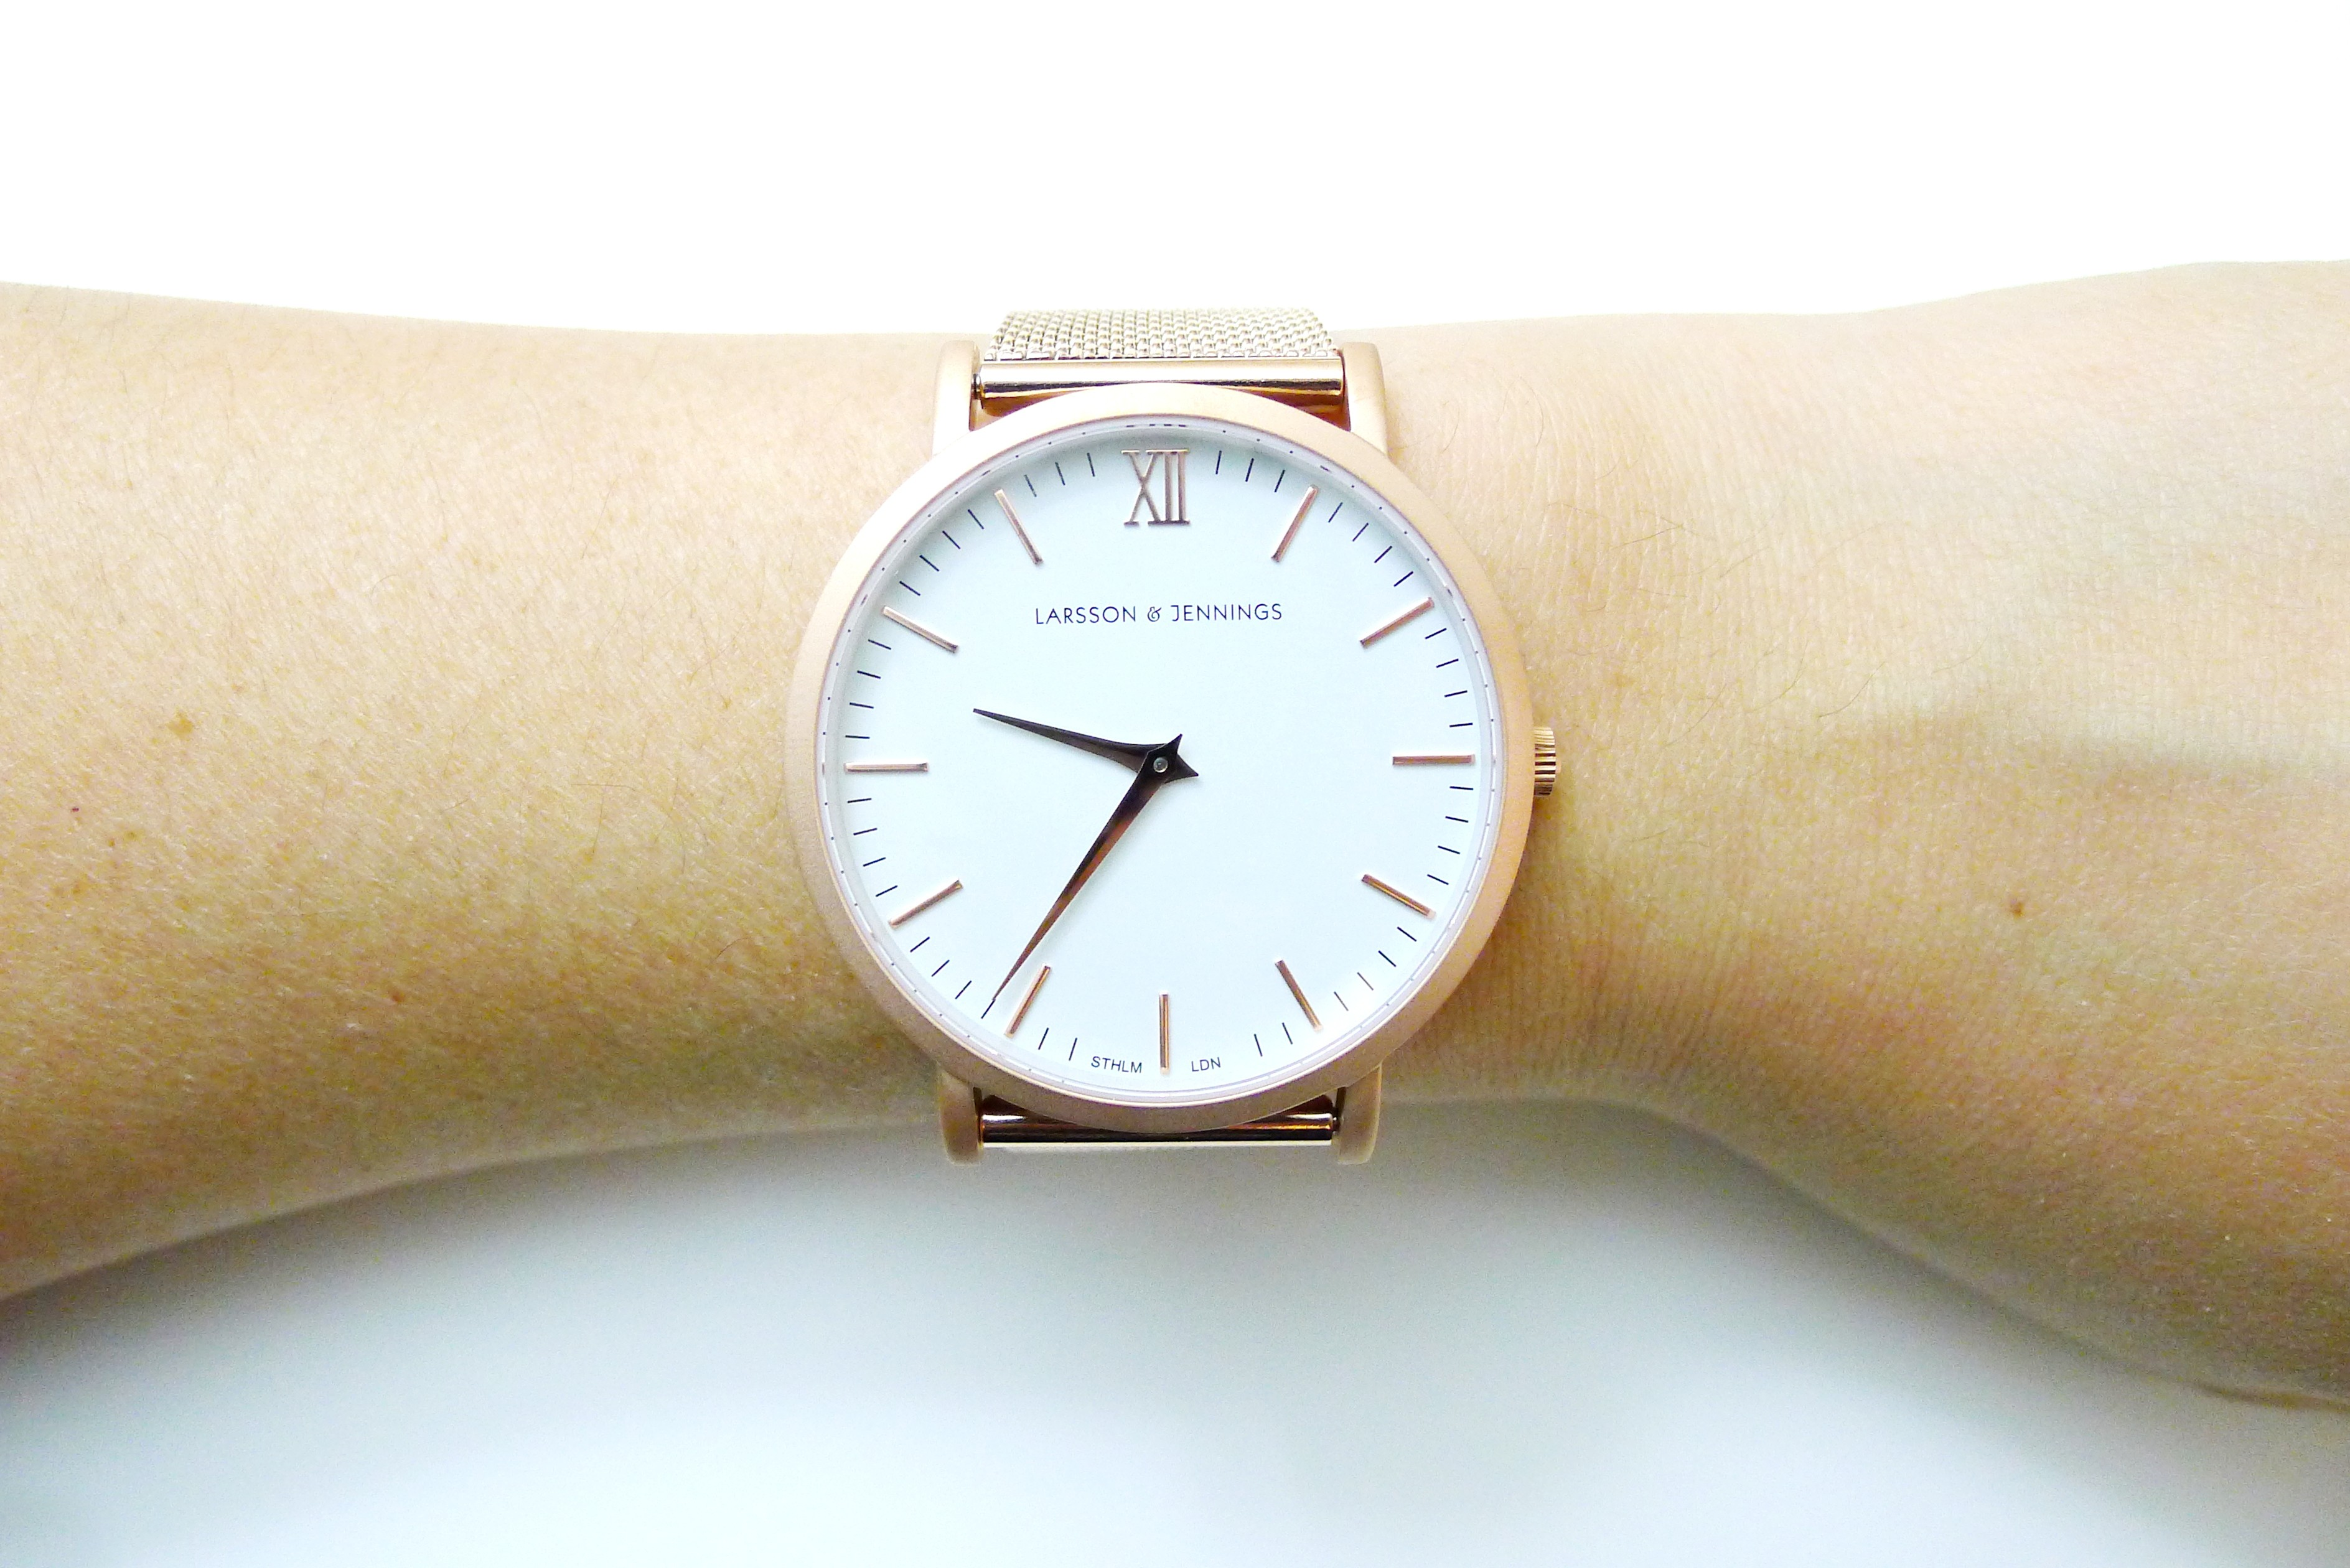 Larsson & Jennings Rose Gold Watch | Net a Porter Exclusive